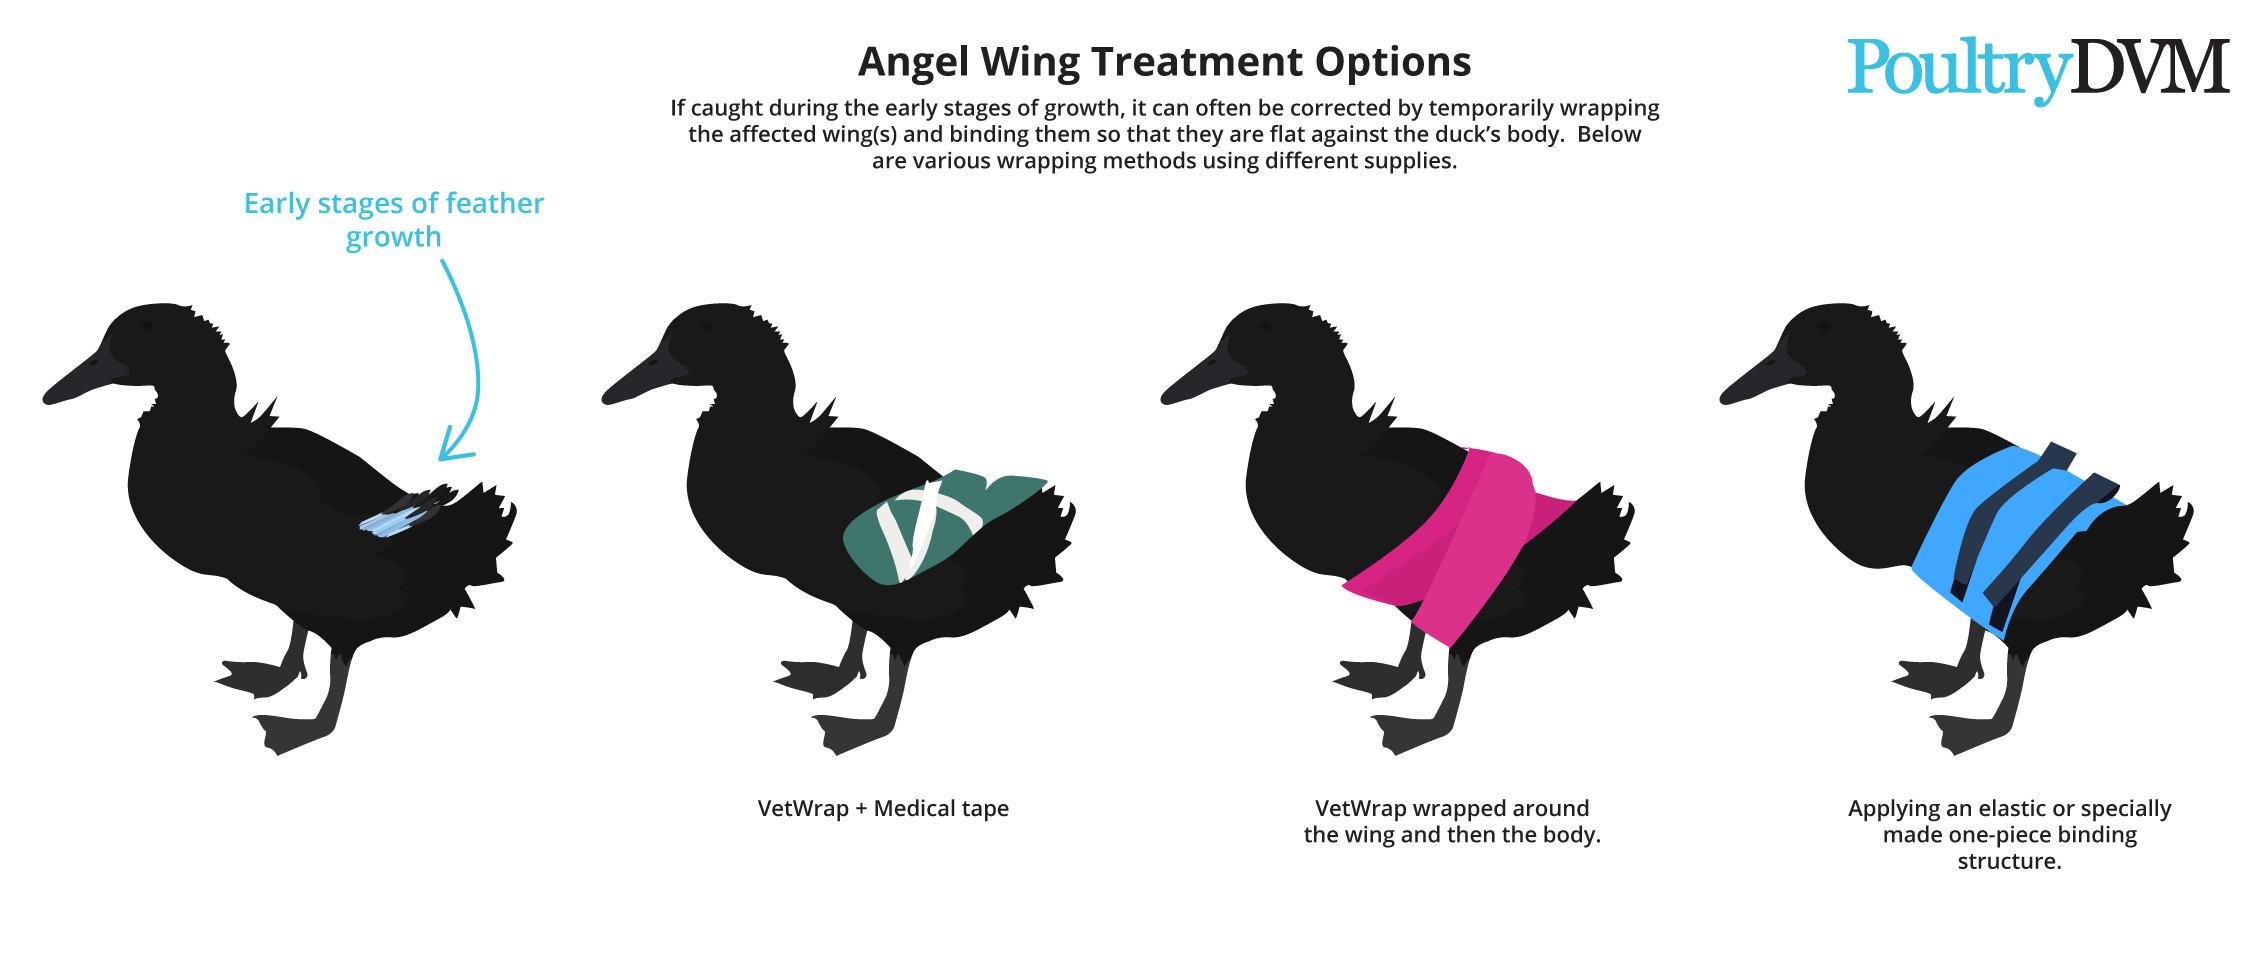 How to fix angel wing in ducks